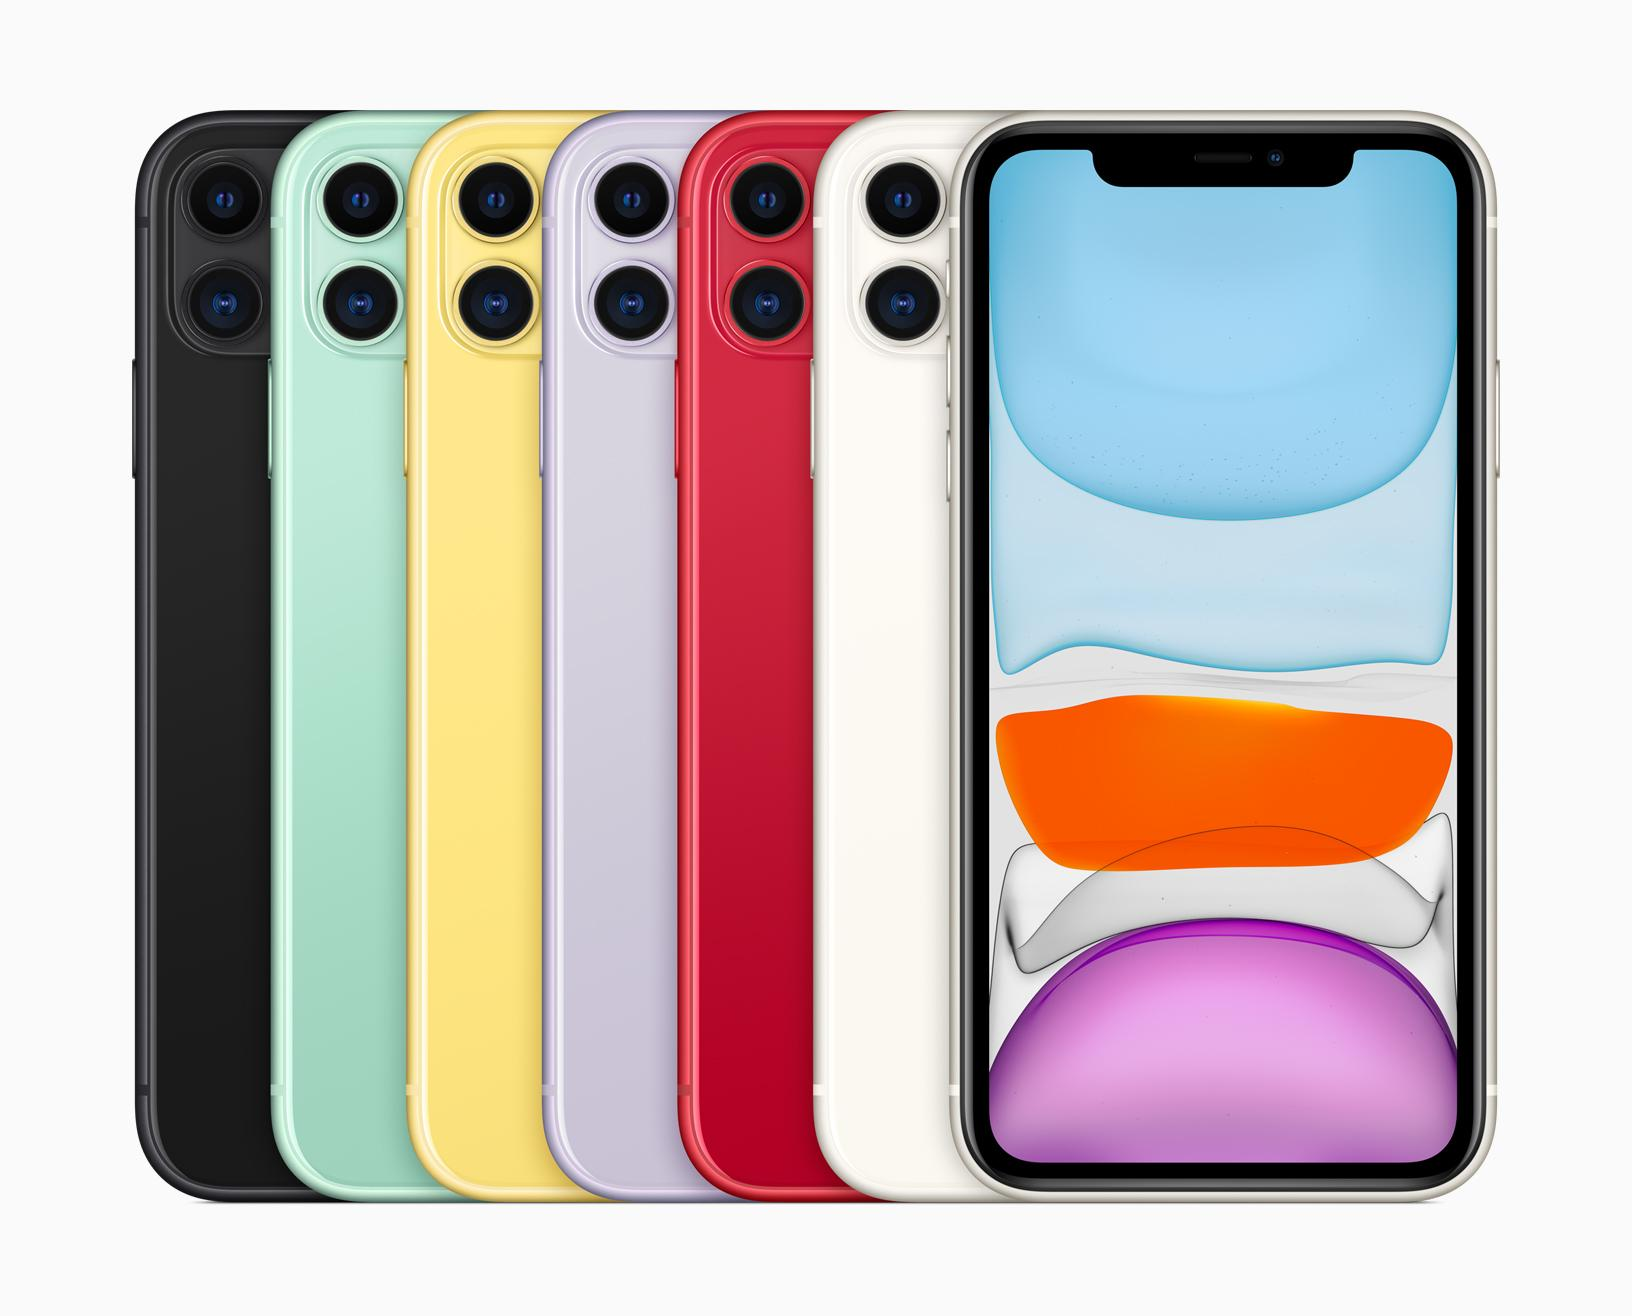 Les couleurs pastels de l'iPhone 11.